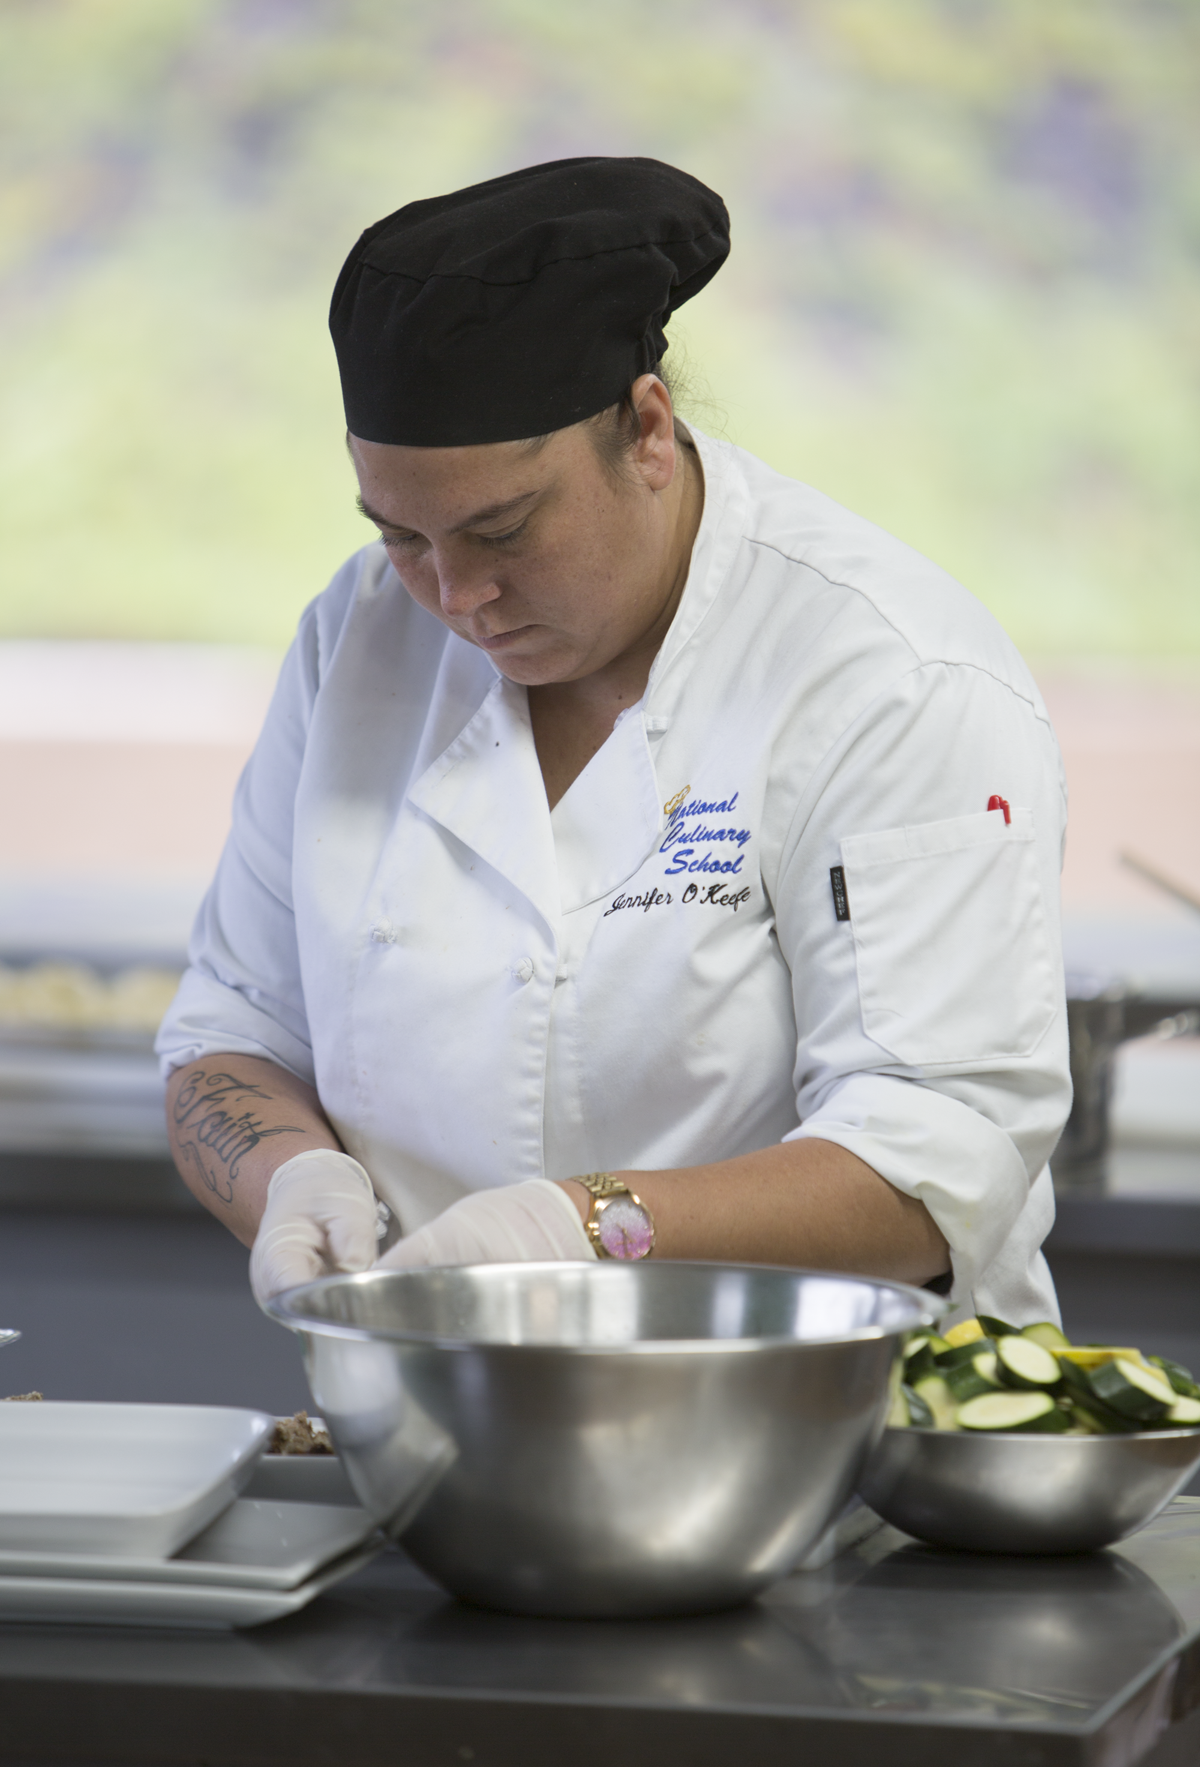 Culinary School Scholarship - JenniferUpon graduating from the program Ending the Game, Jennifer was awarded a scholarship to attend Culinary School. We are proud to announce that she completed and graduated in November 2018 and is now closer to fulfilling her dream of becoming a chef.